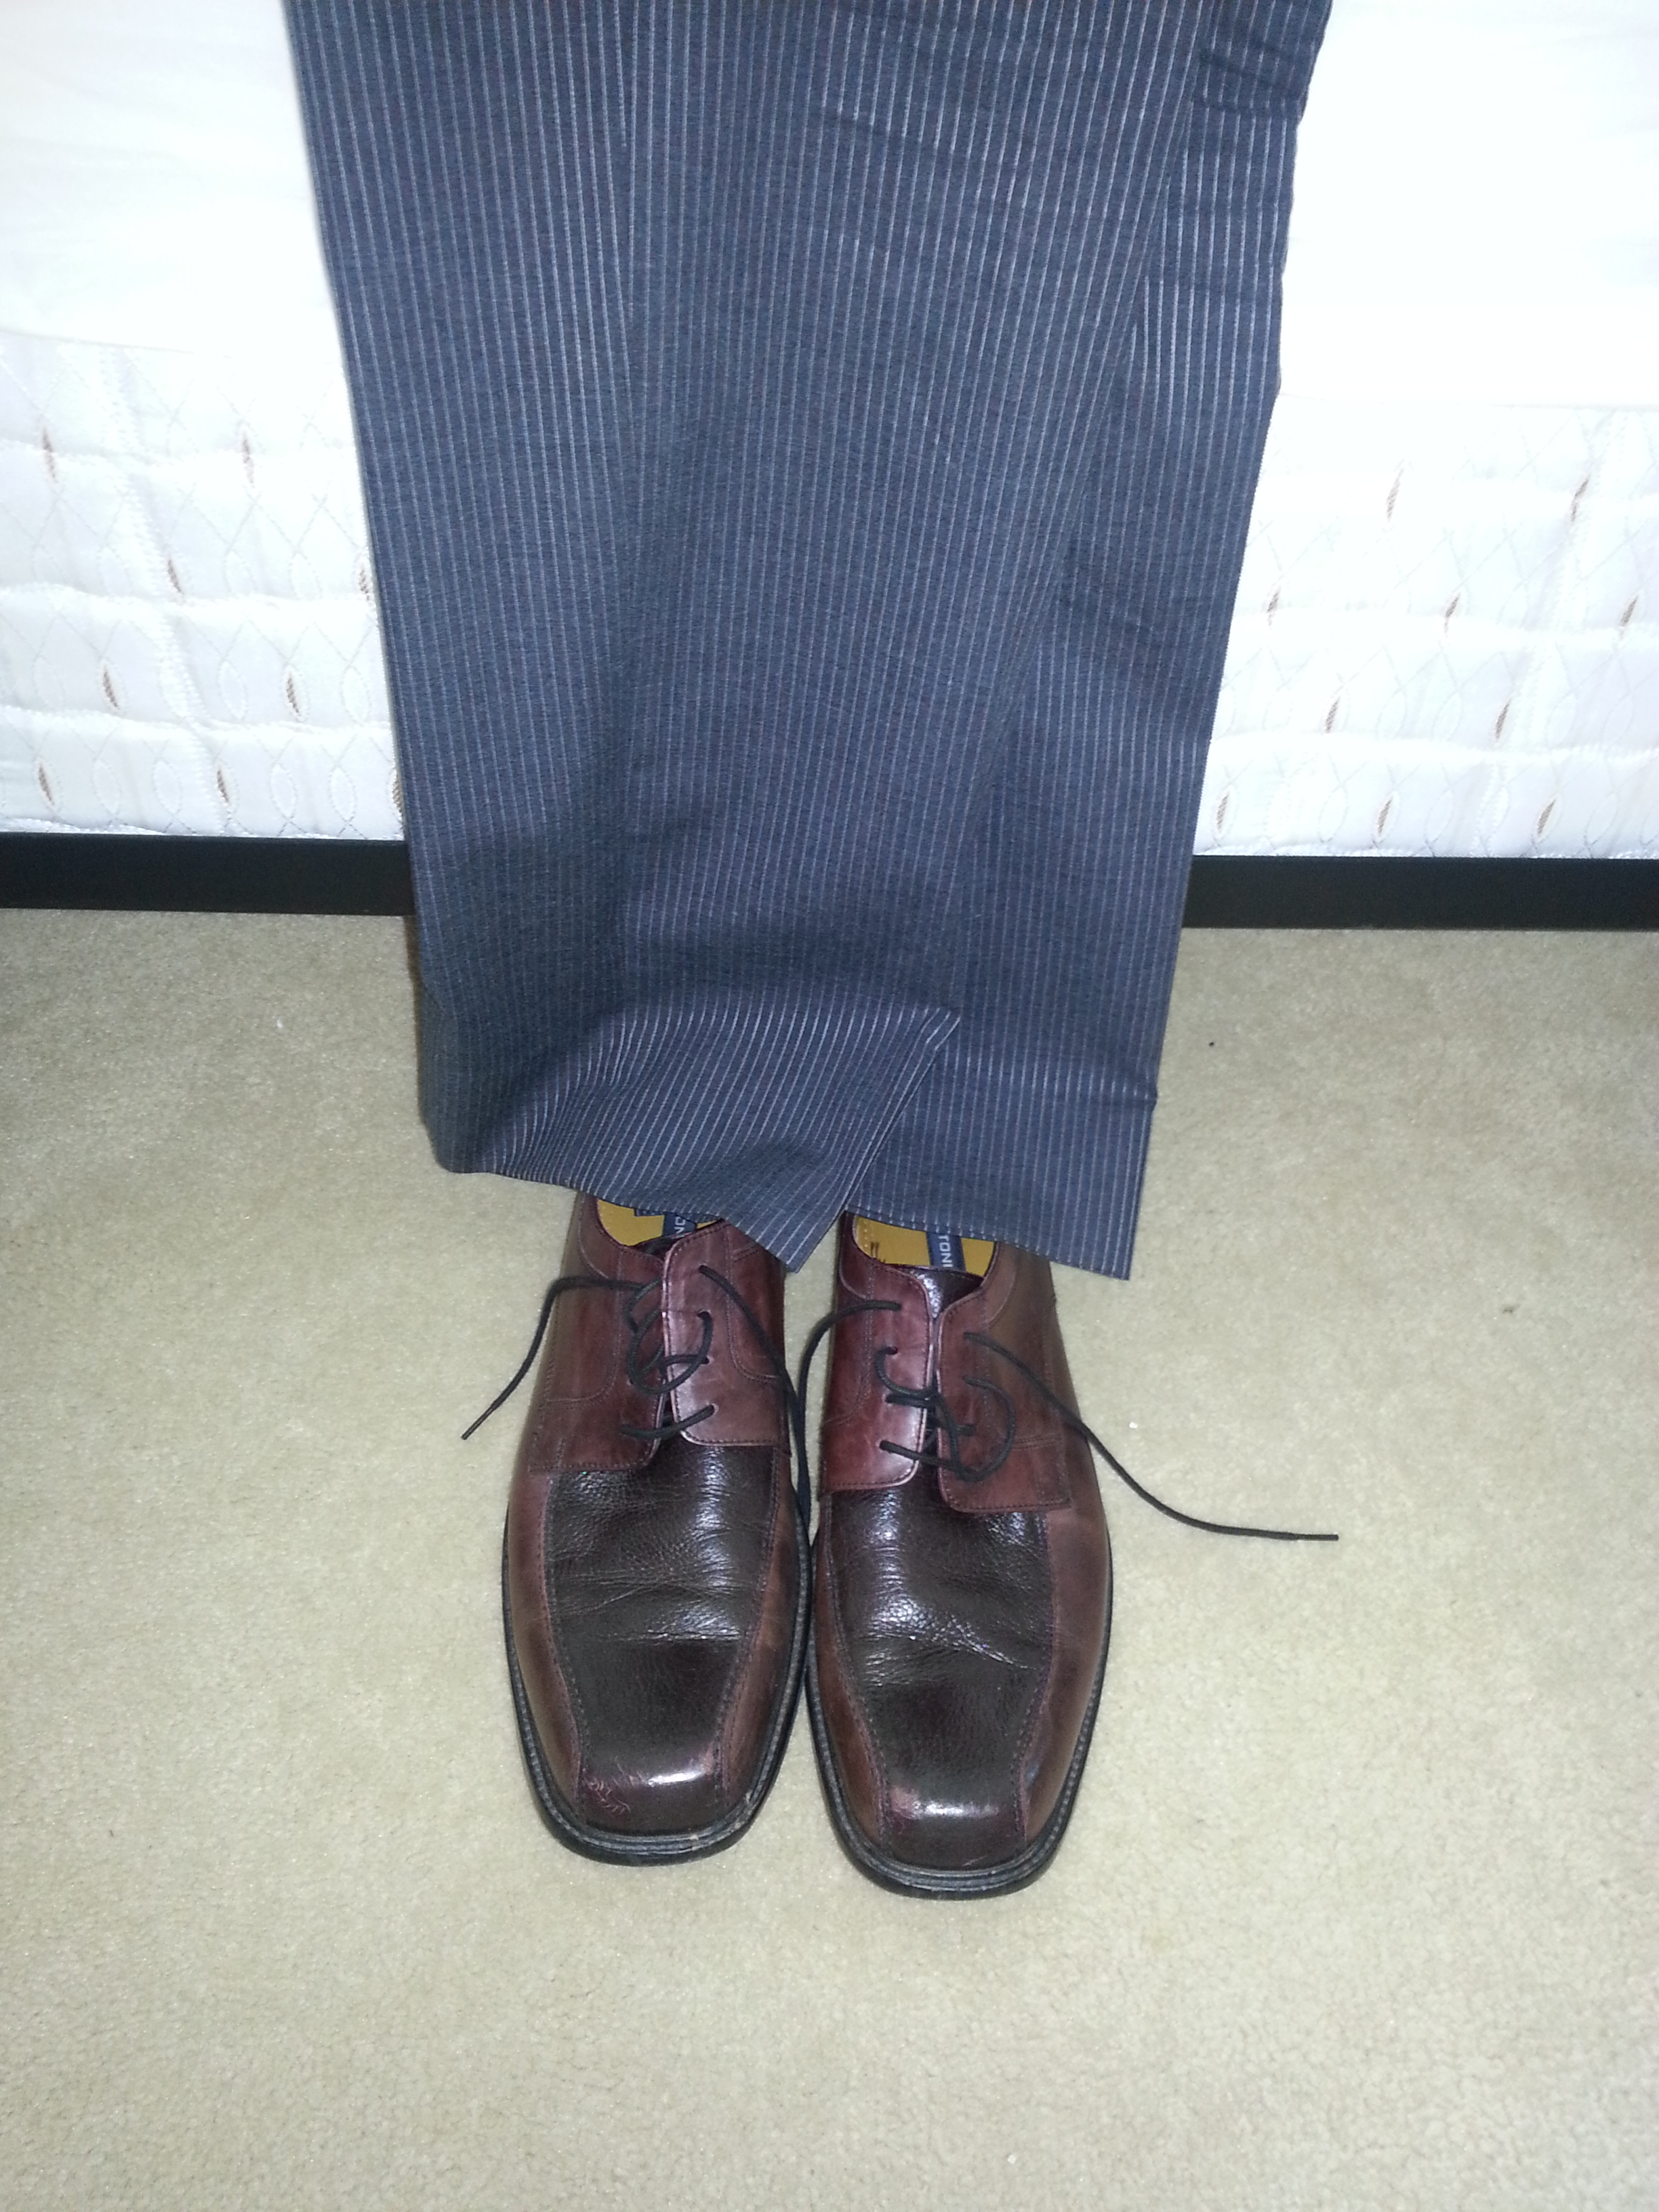 Creative What Color Pants Look Best With Brown Shoes  Quora